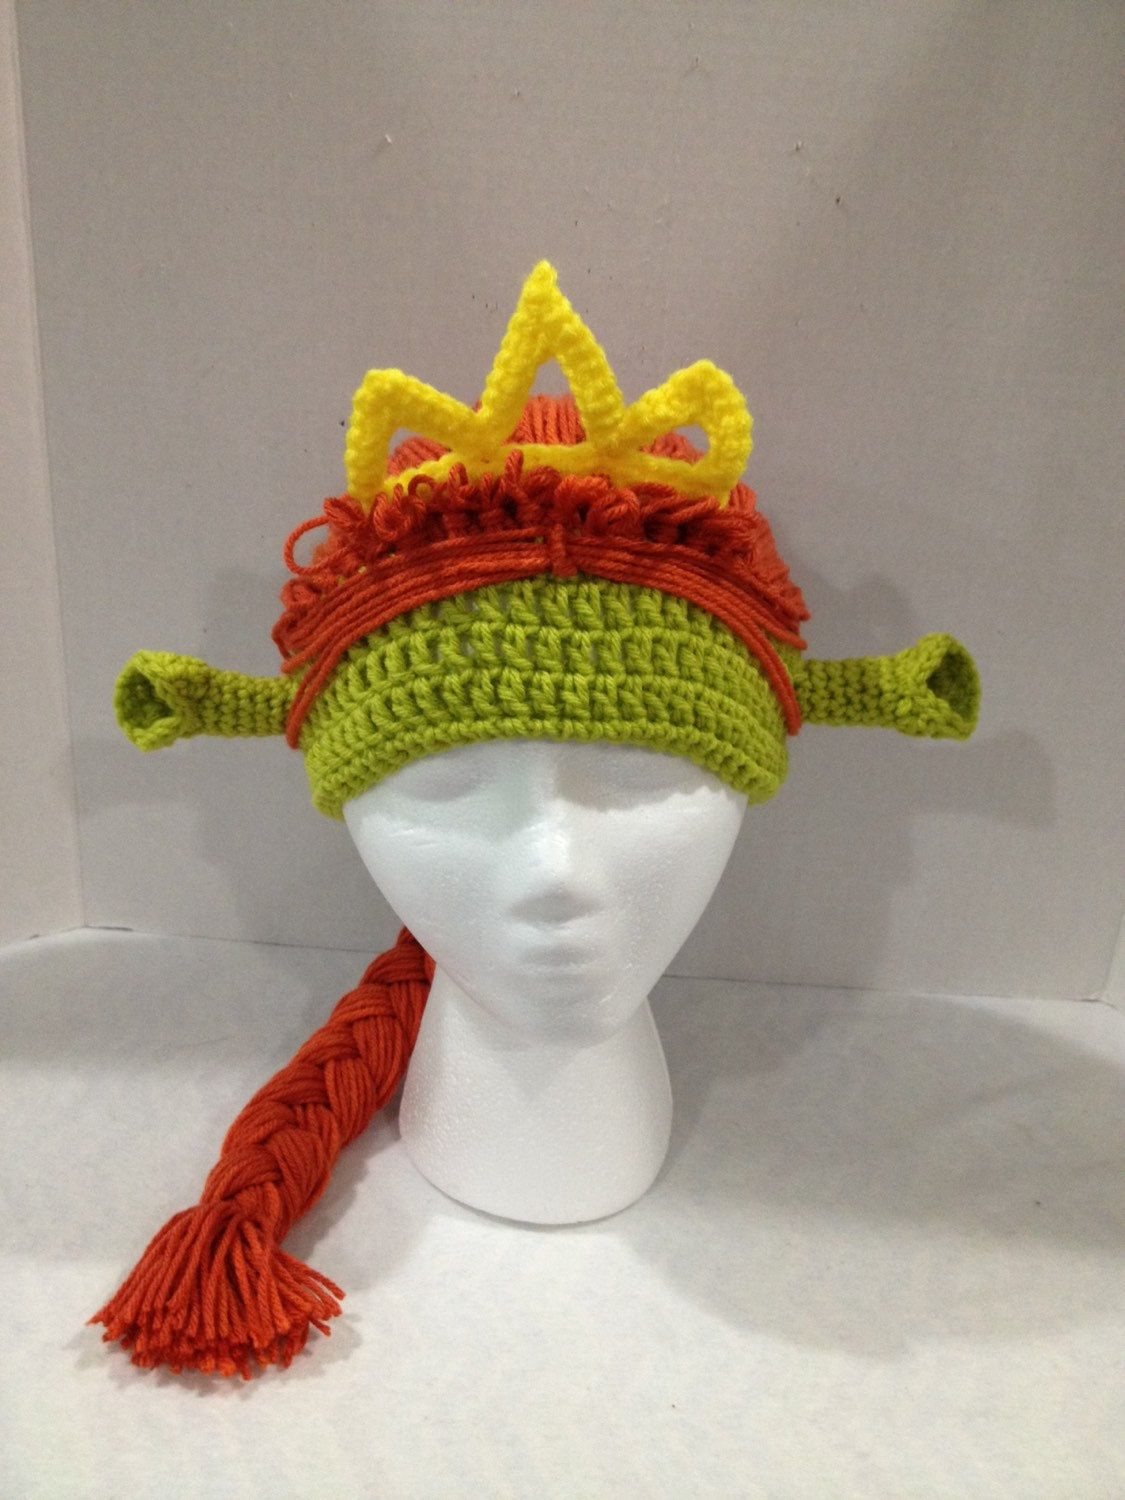 9d2dd5d5e4d Shrek Princess Fiona inspired crochet ogre hat by KaityBugKreations on Etsy  https   www